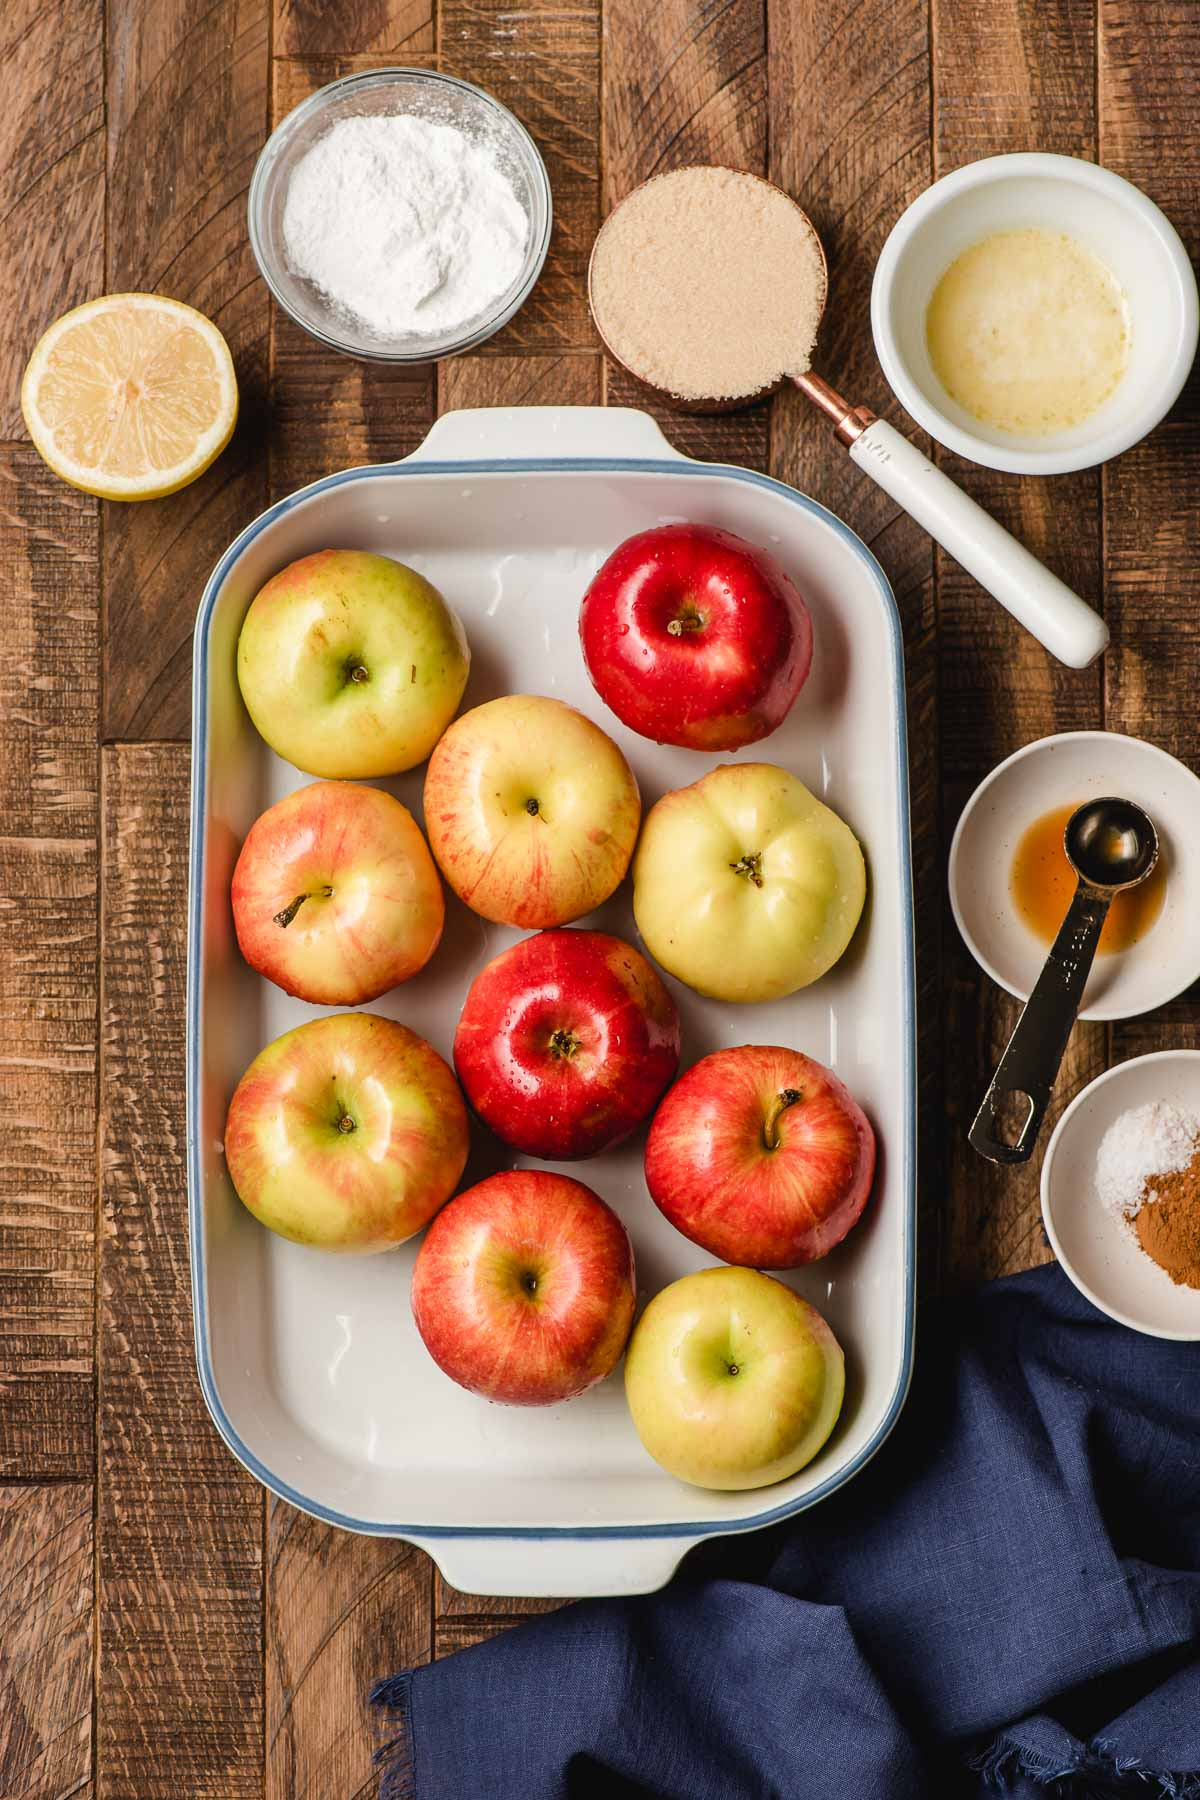 Whole apples in a casserole dish surrounded by bowls of brown sugar, melted butter, cornstarch, cinnamon, and a halved lemon.